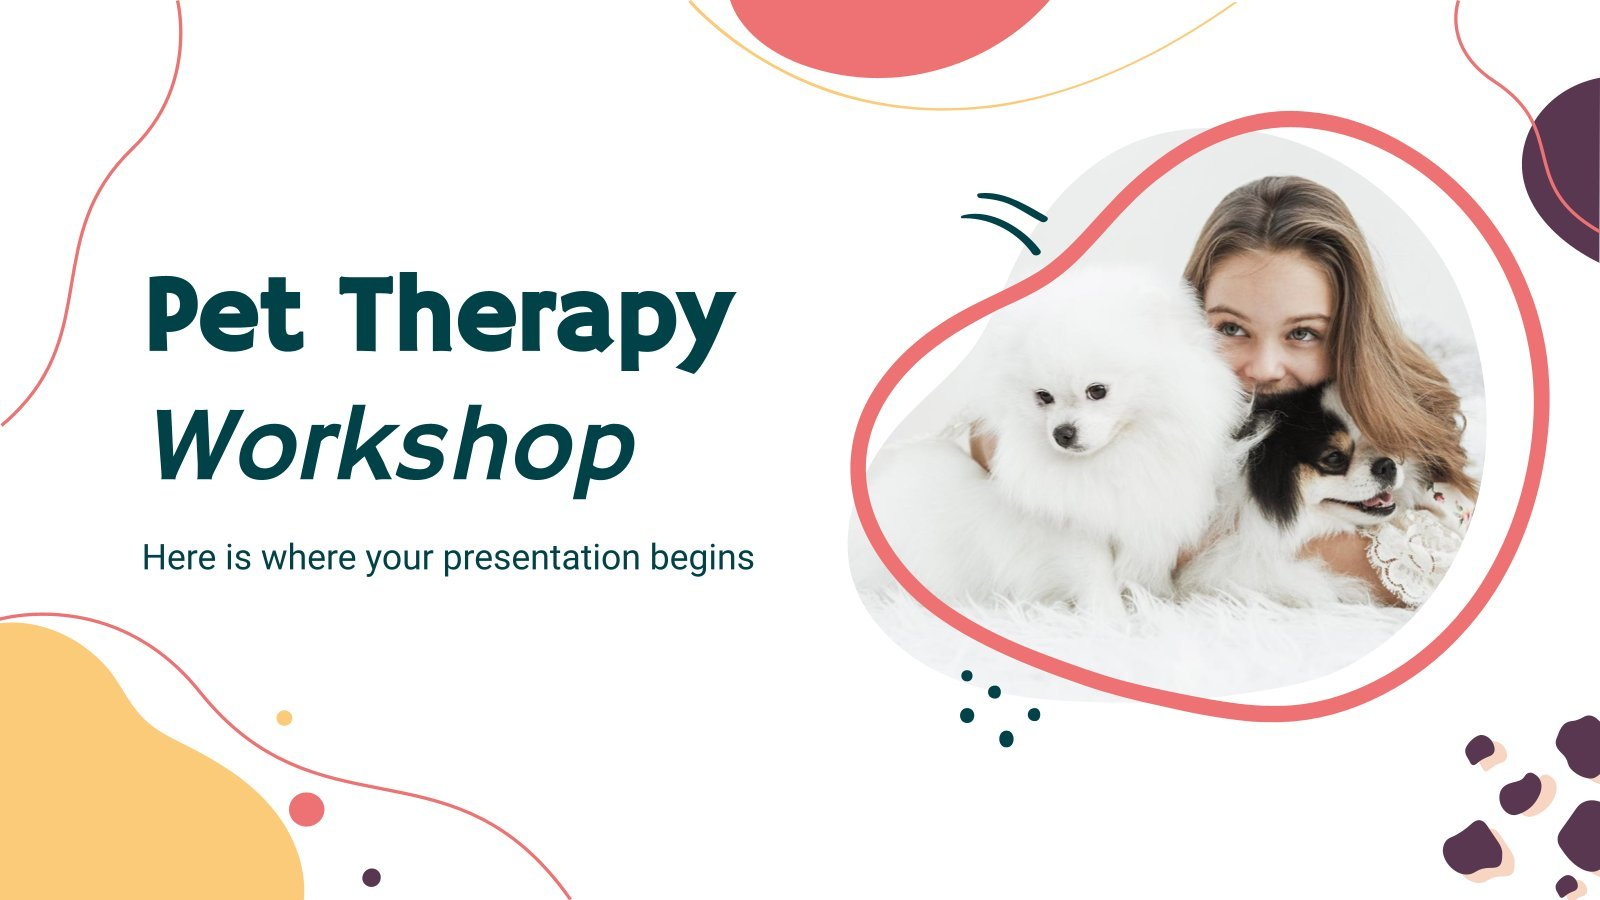 Pet Therapy Workshop presentation template